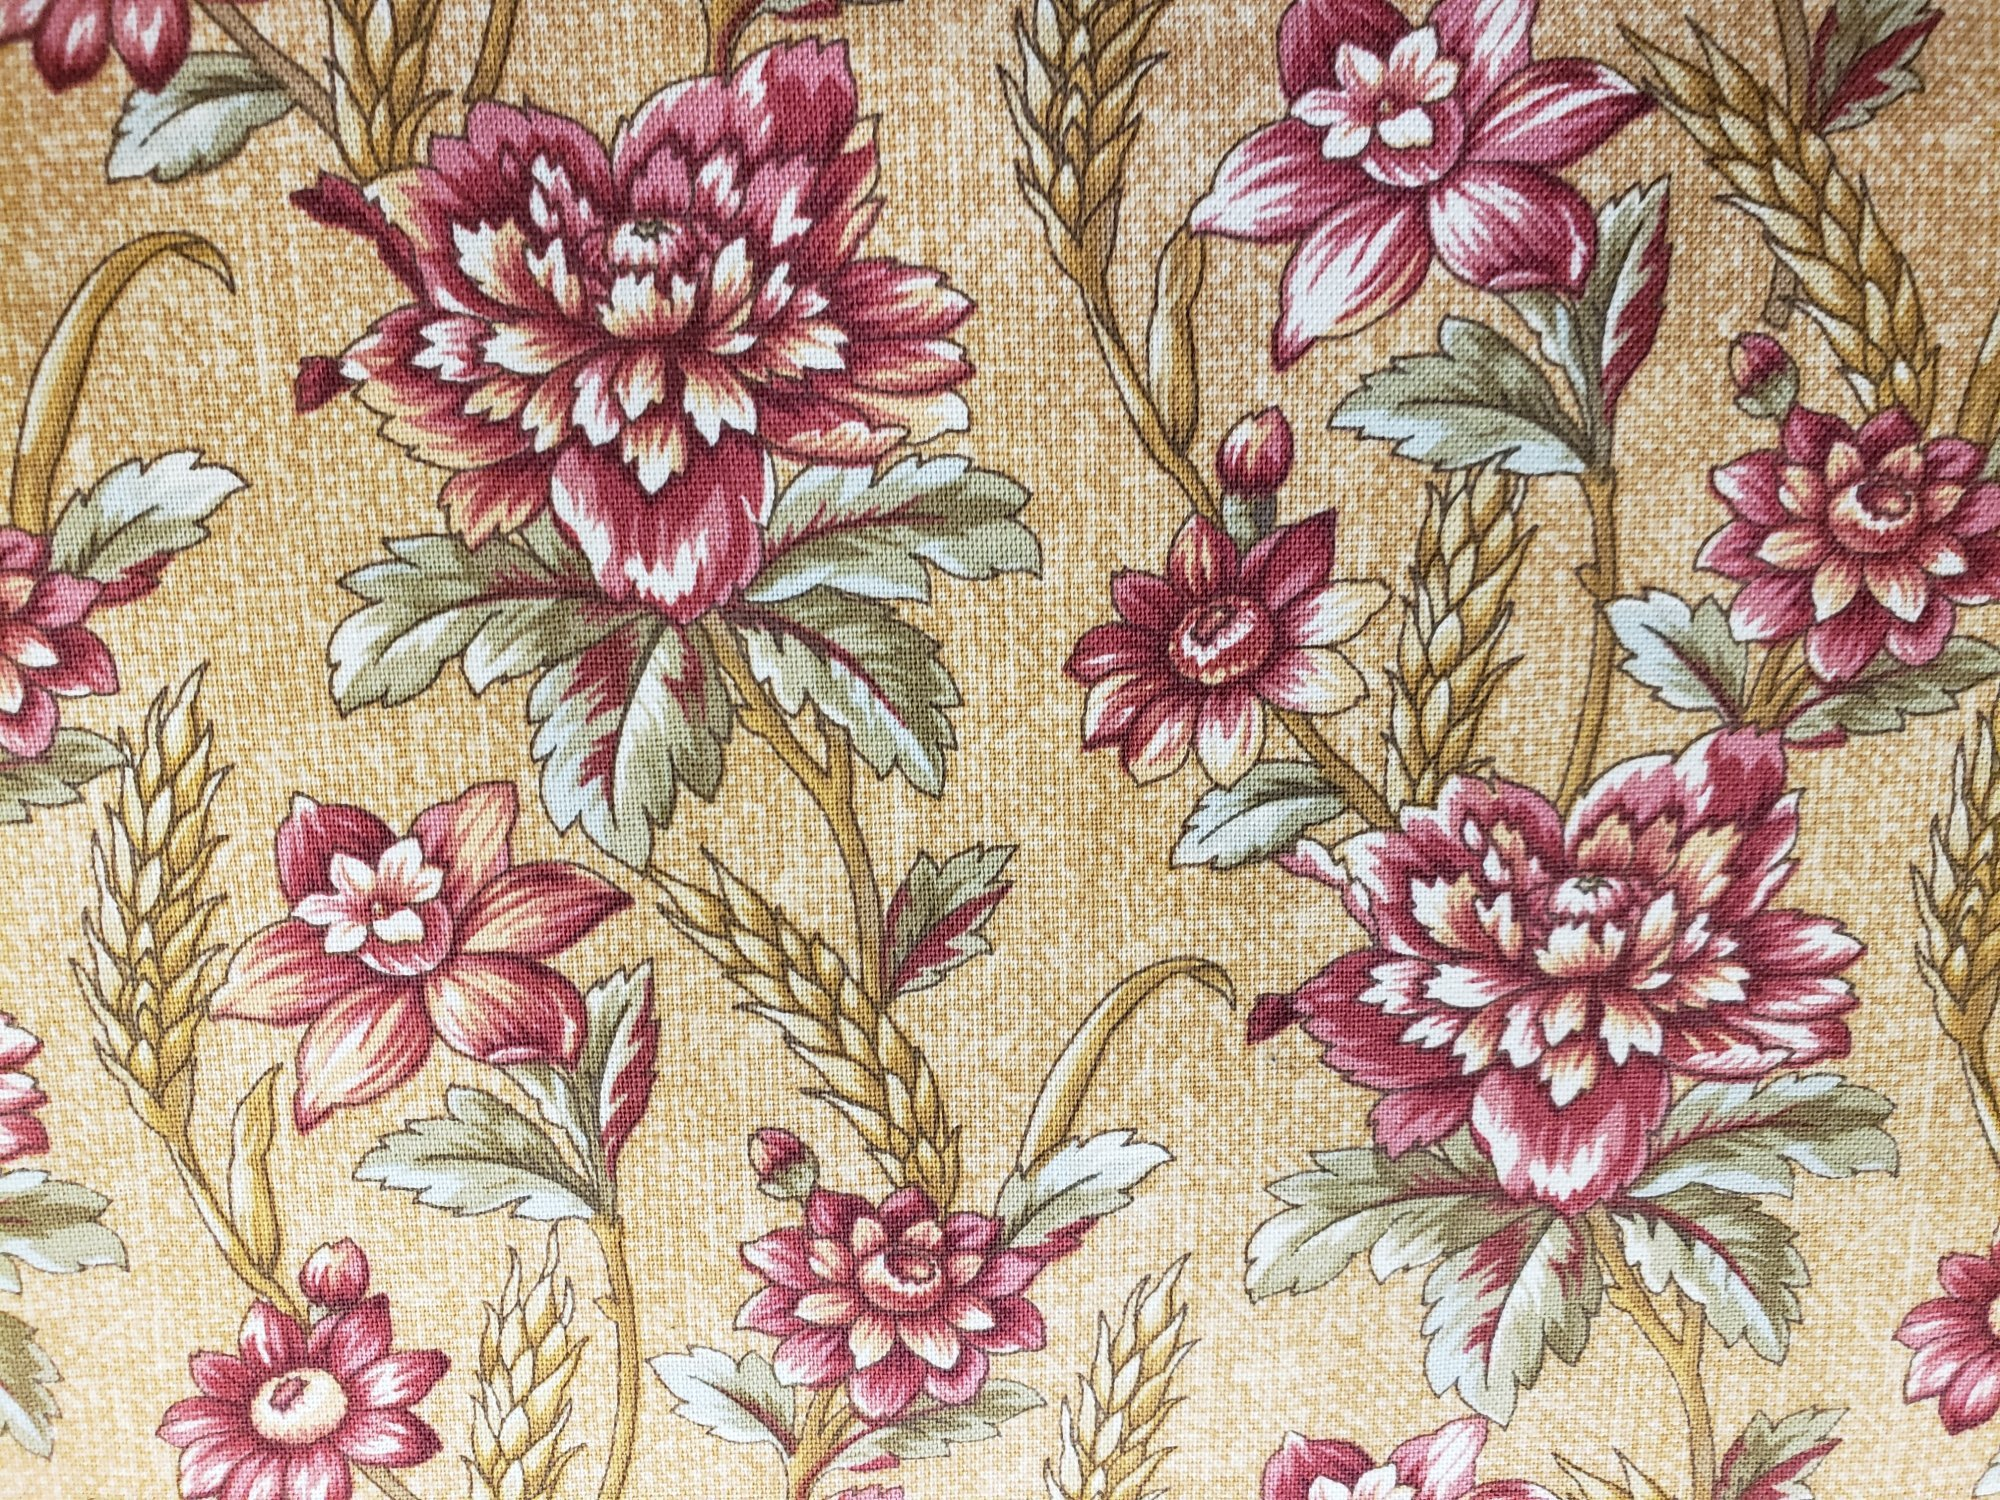 HG Bountiful Harvest HEG8148-33  Buggy Barn  Maroon & Mauve flowers with Wheat on Gold Burlap Texture